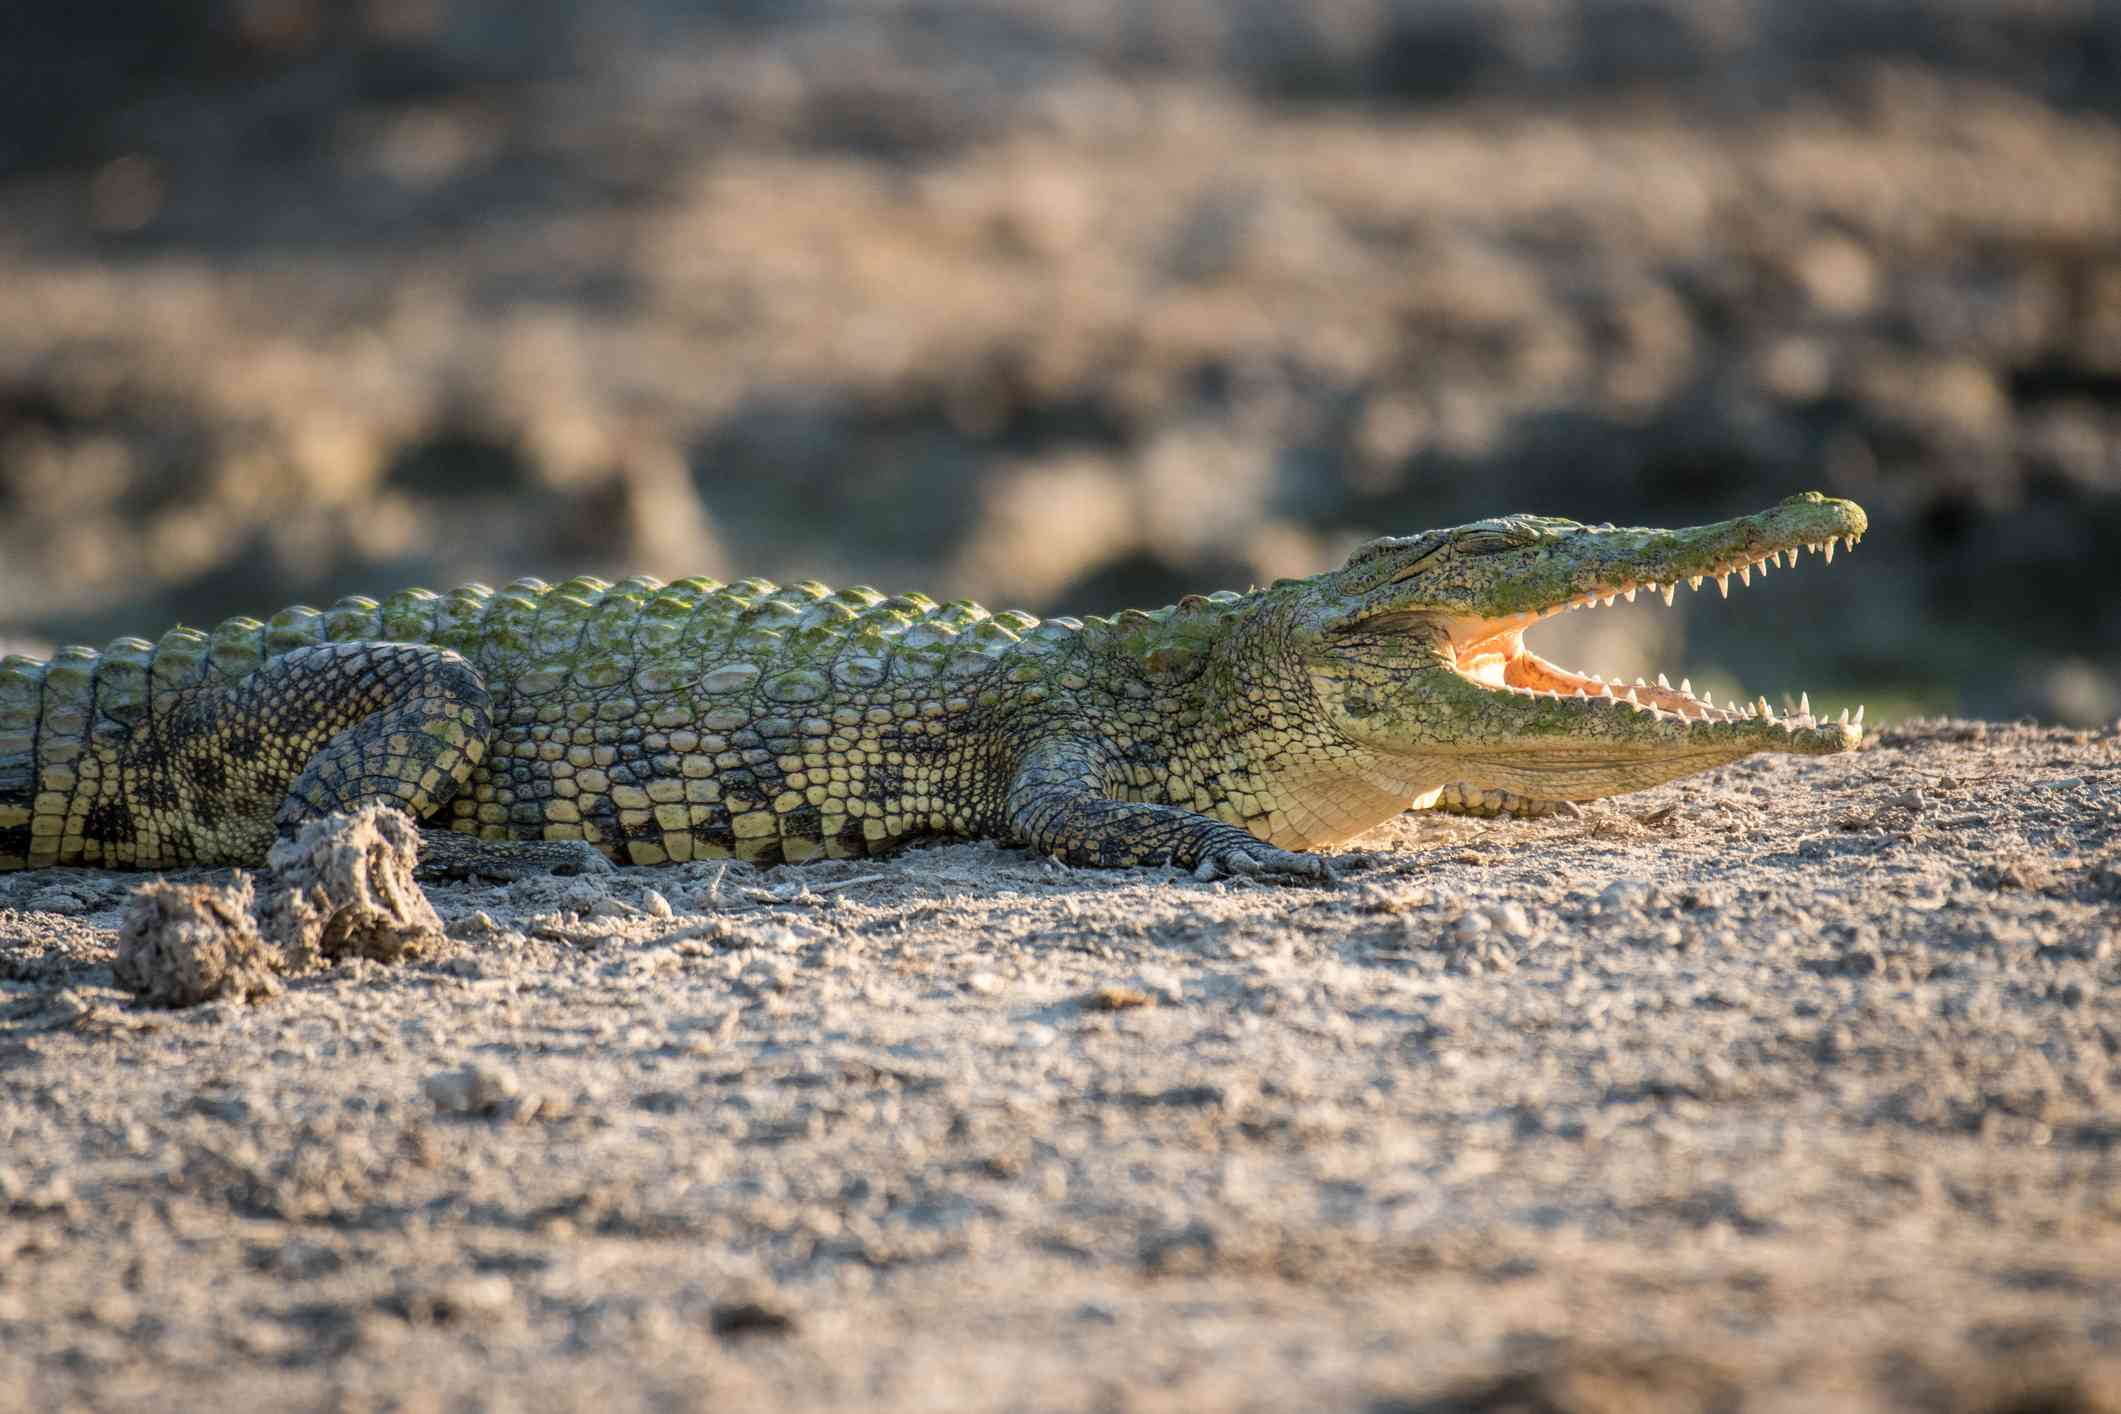 Nile crocodile basking in the dirt with its mouth open